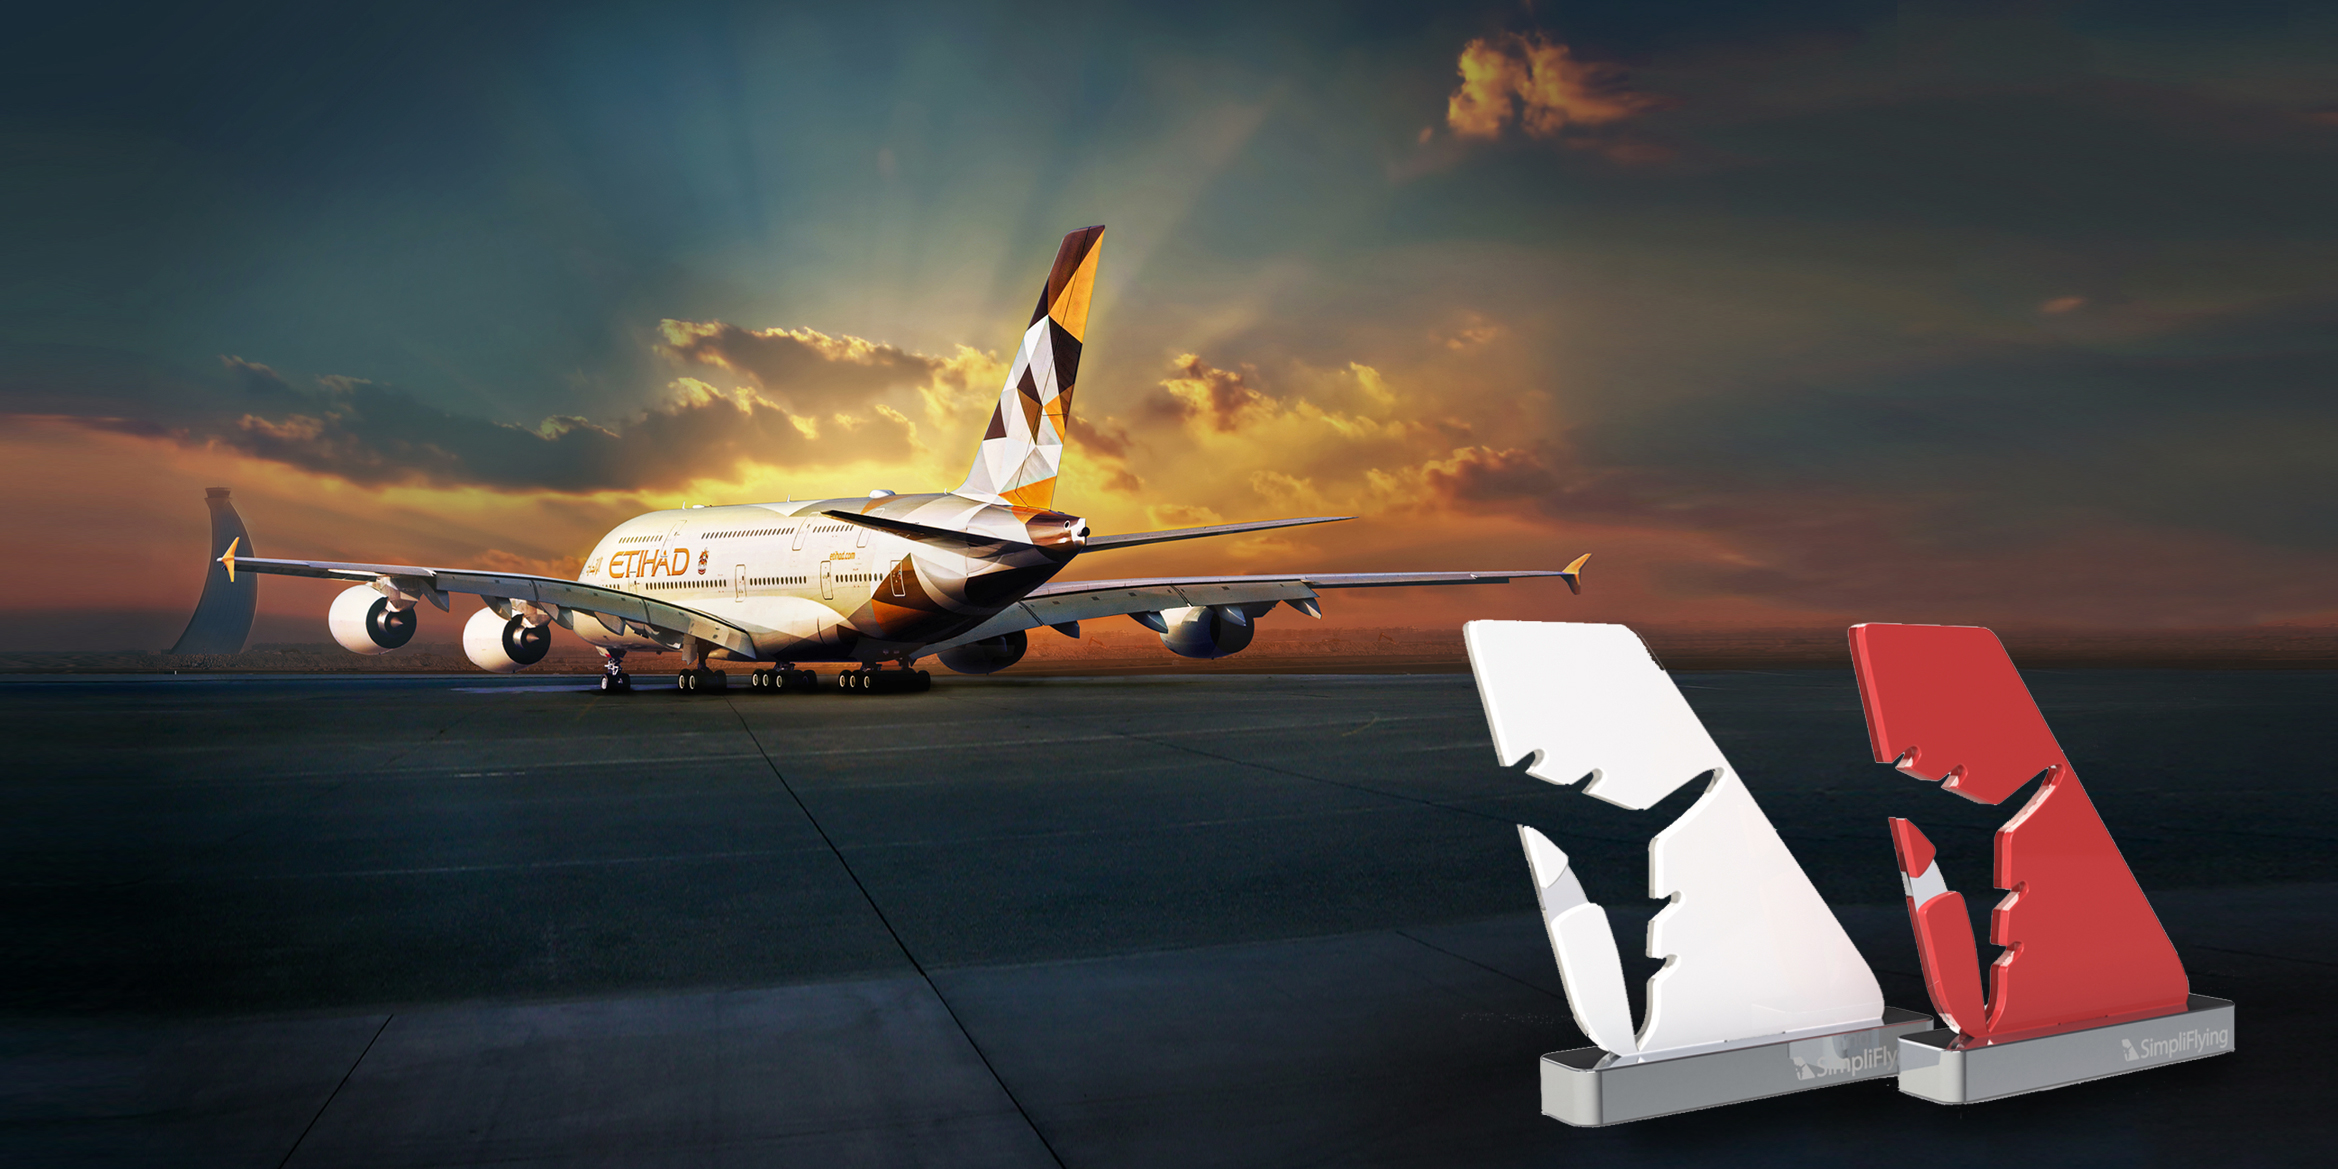 Simplflying - Etihad Airways